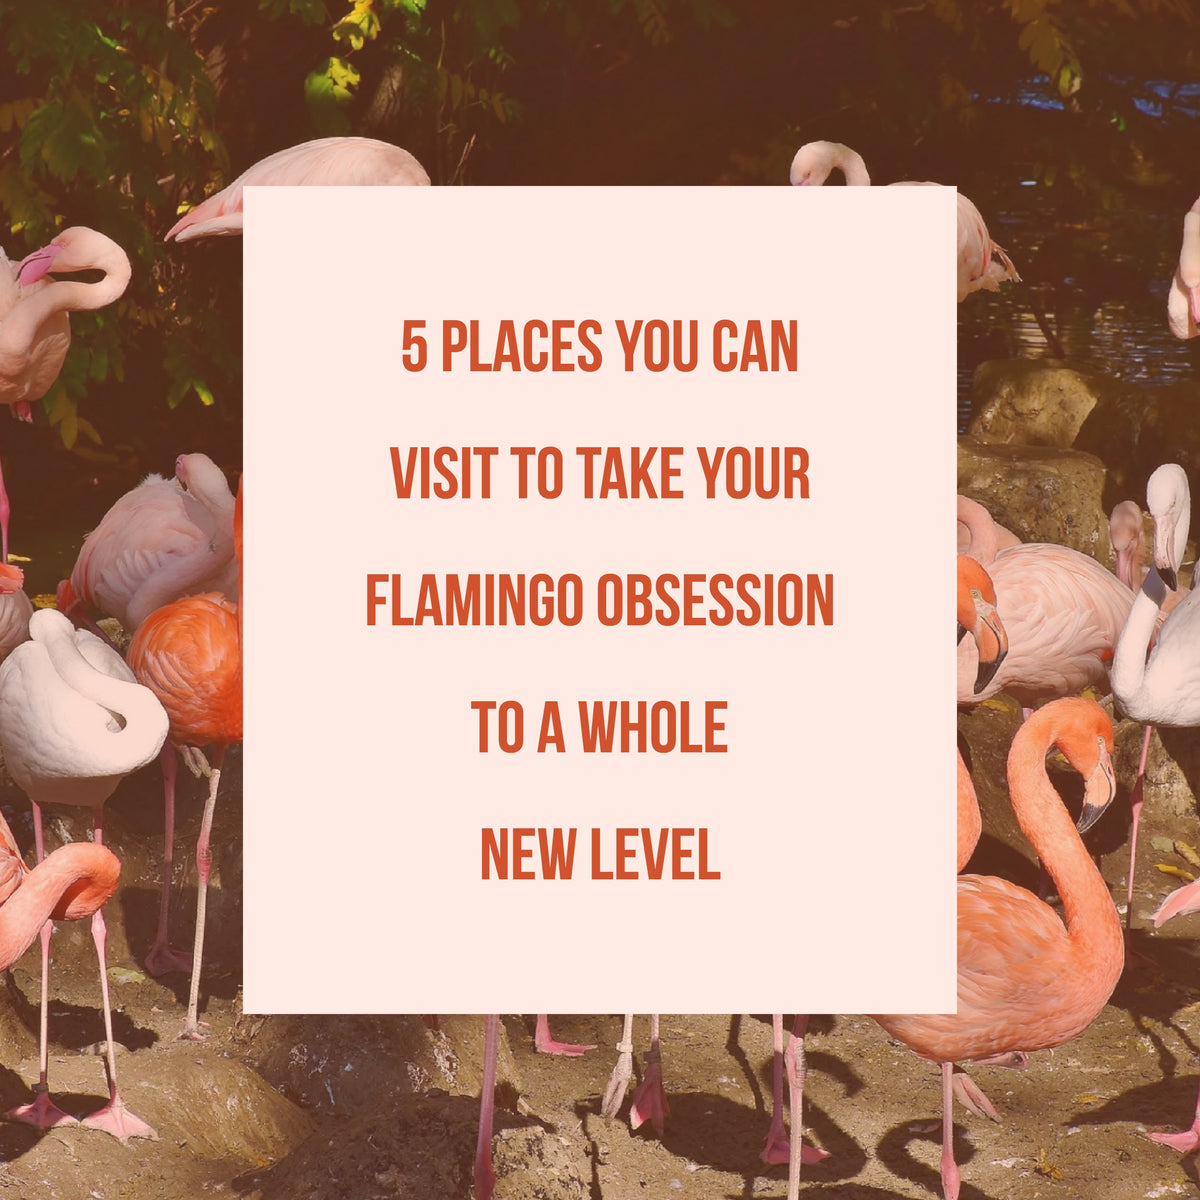 5 Sites To take your Flamingo obsession to a whole new level